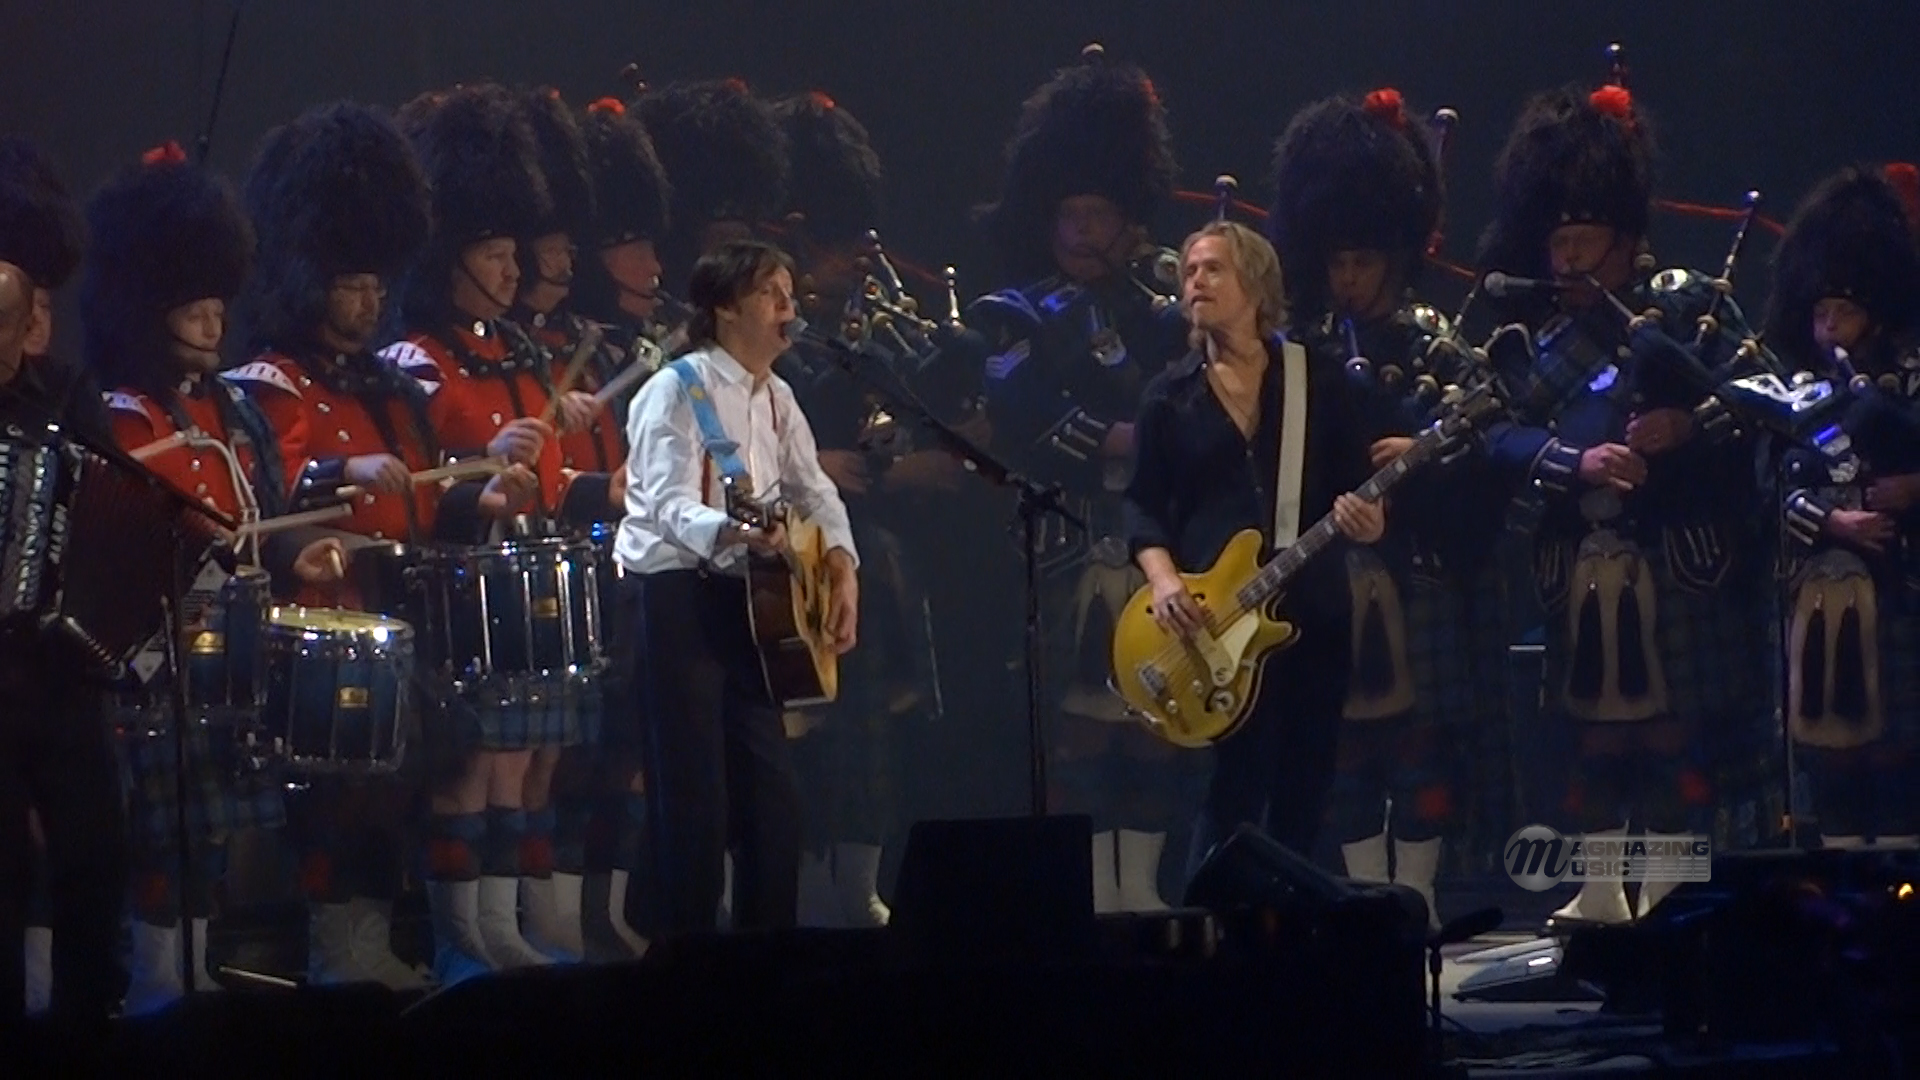 Video Archive: 2012-11-25: Paul McCartney at BC Place Stadium